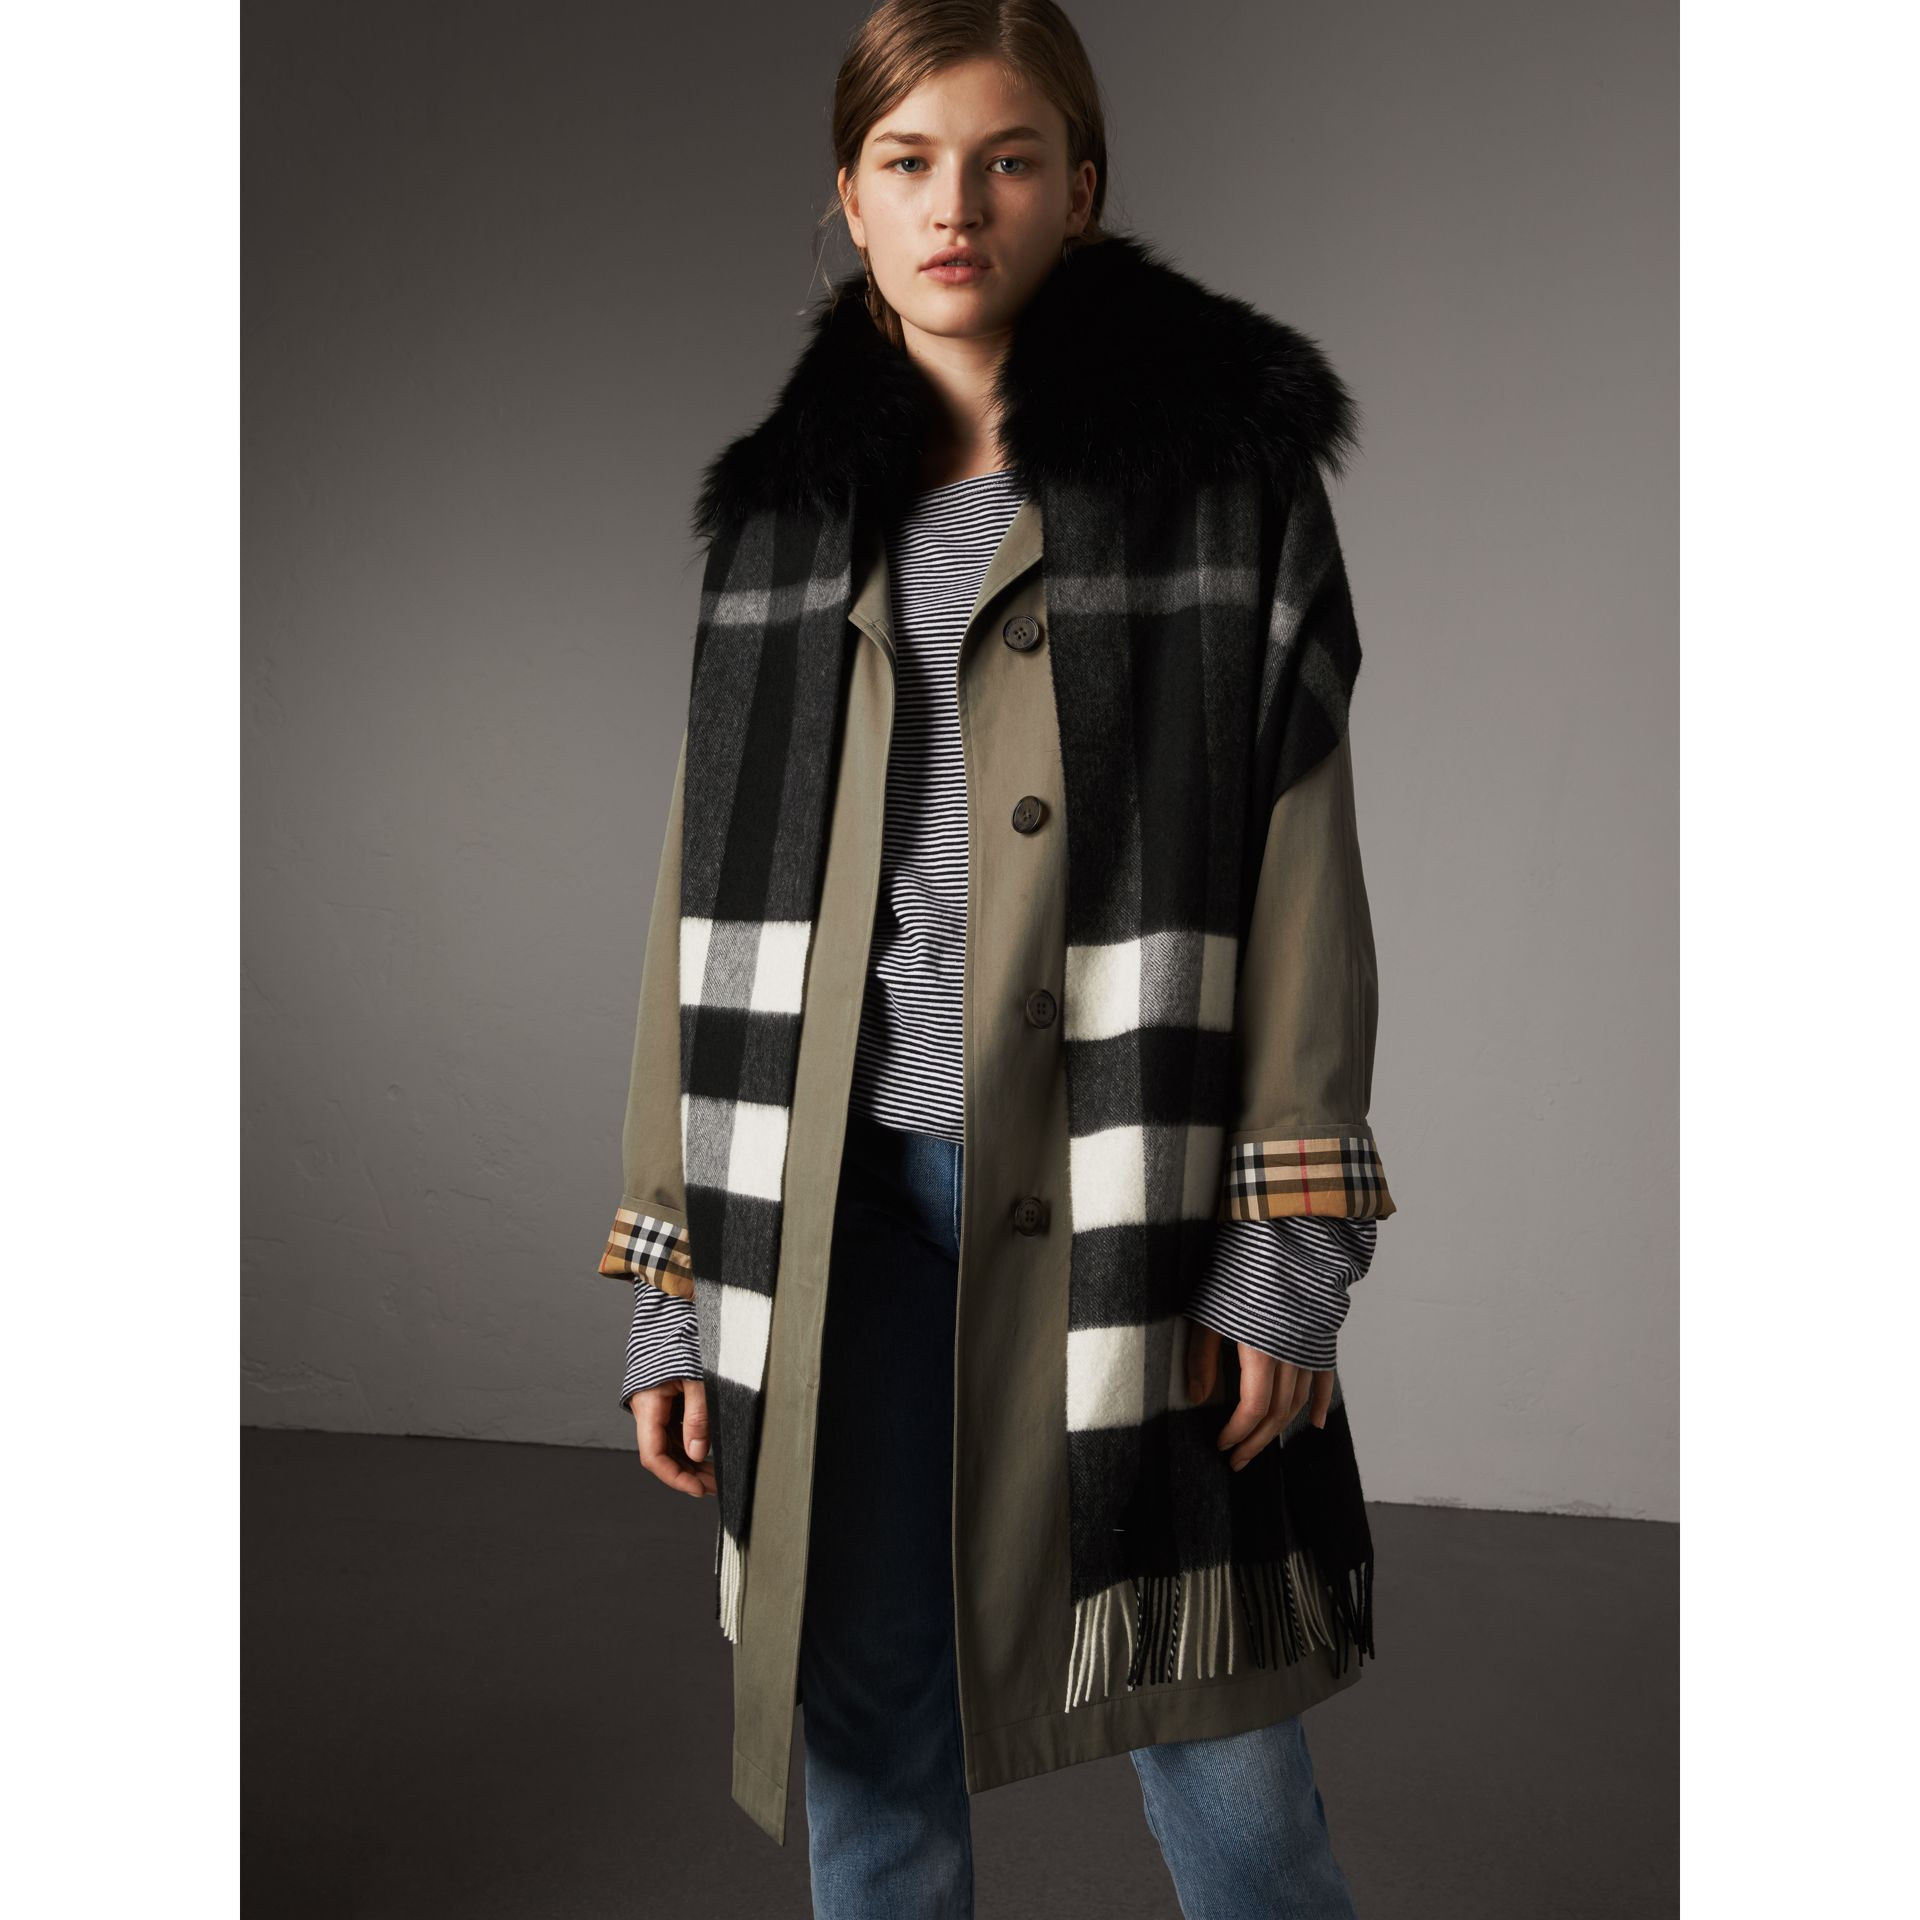 Fox Fur Trim Check Cashmere Scarf in Black/black - Women | Burberry Australia - gallery image 3